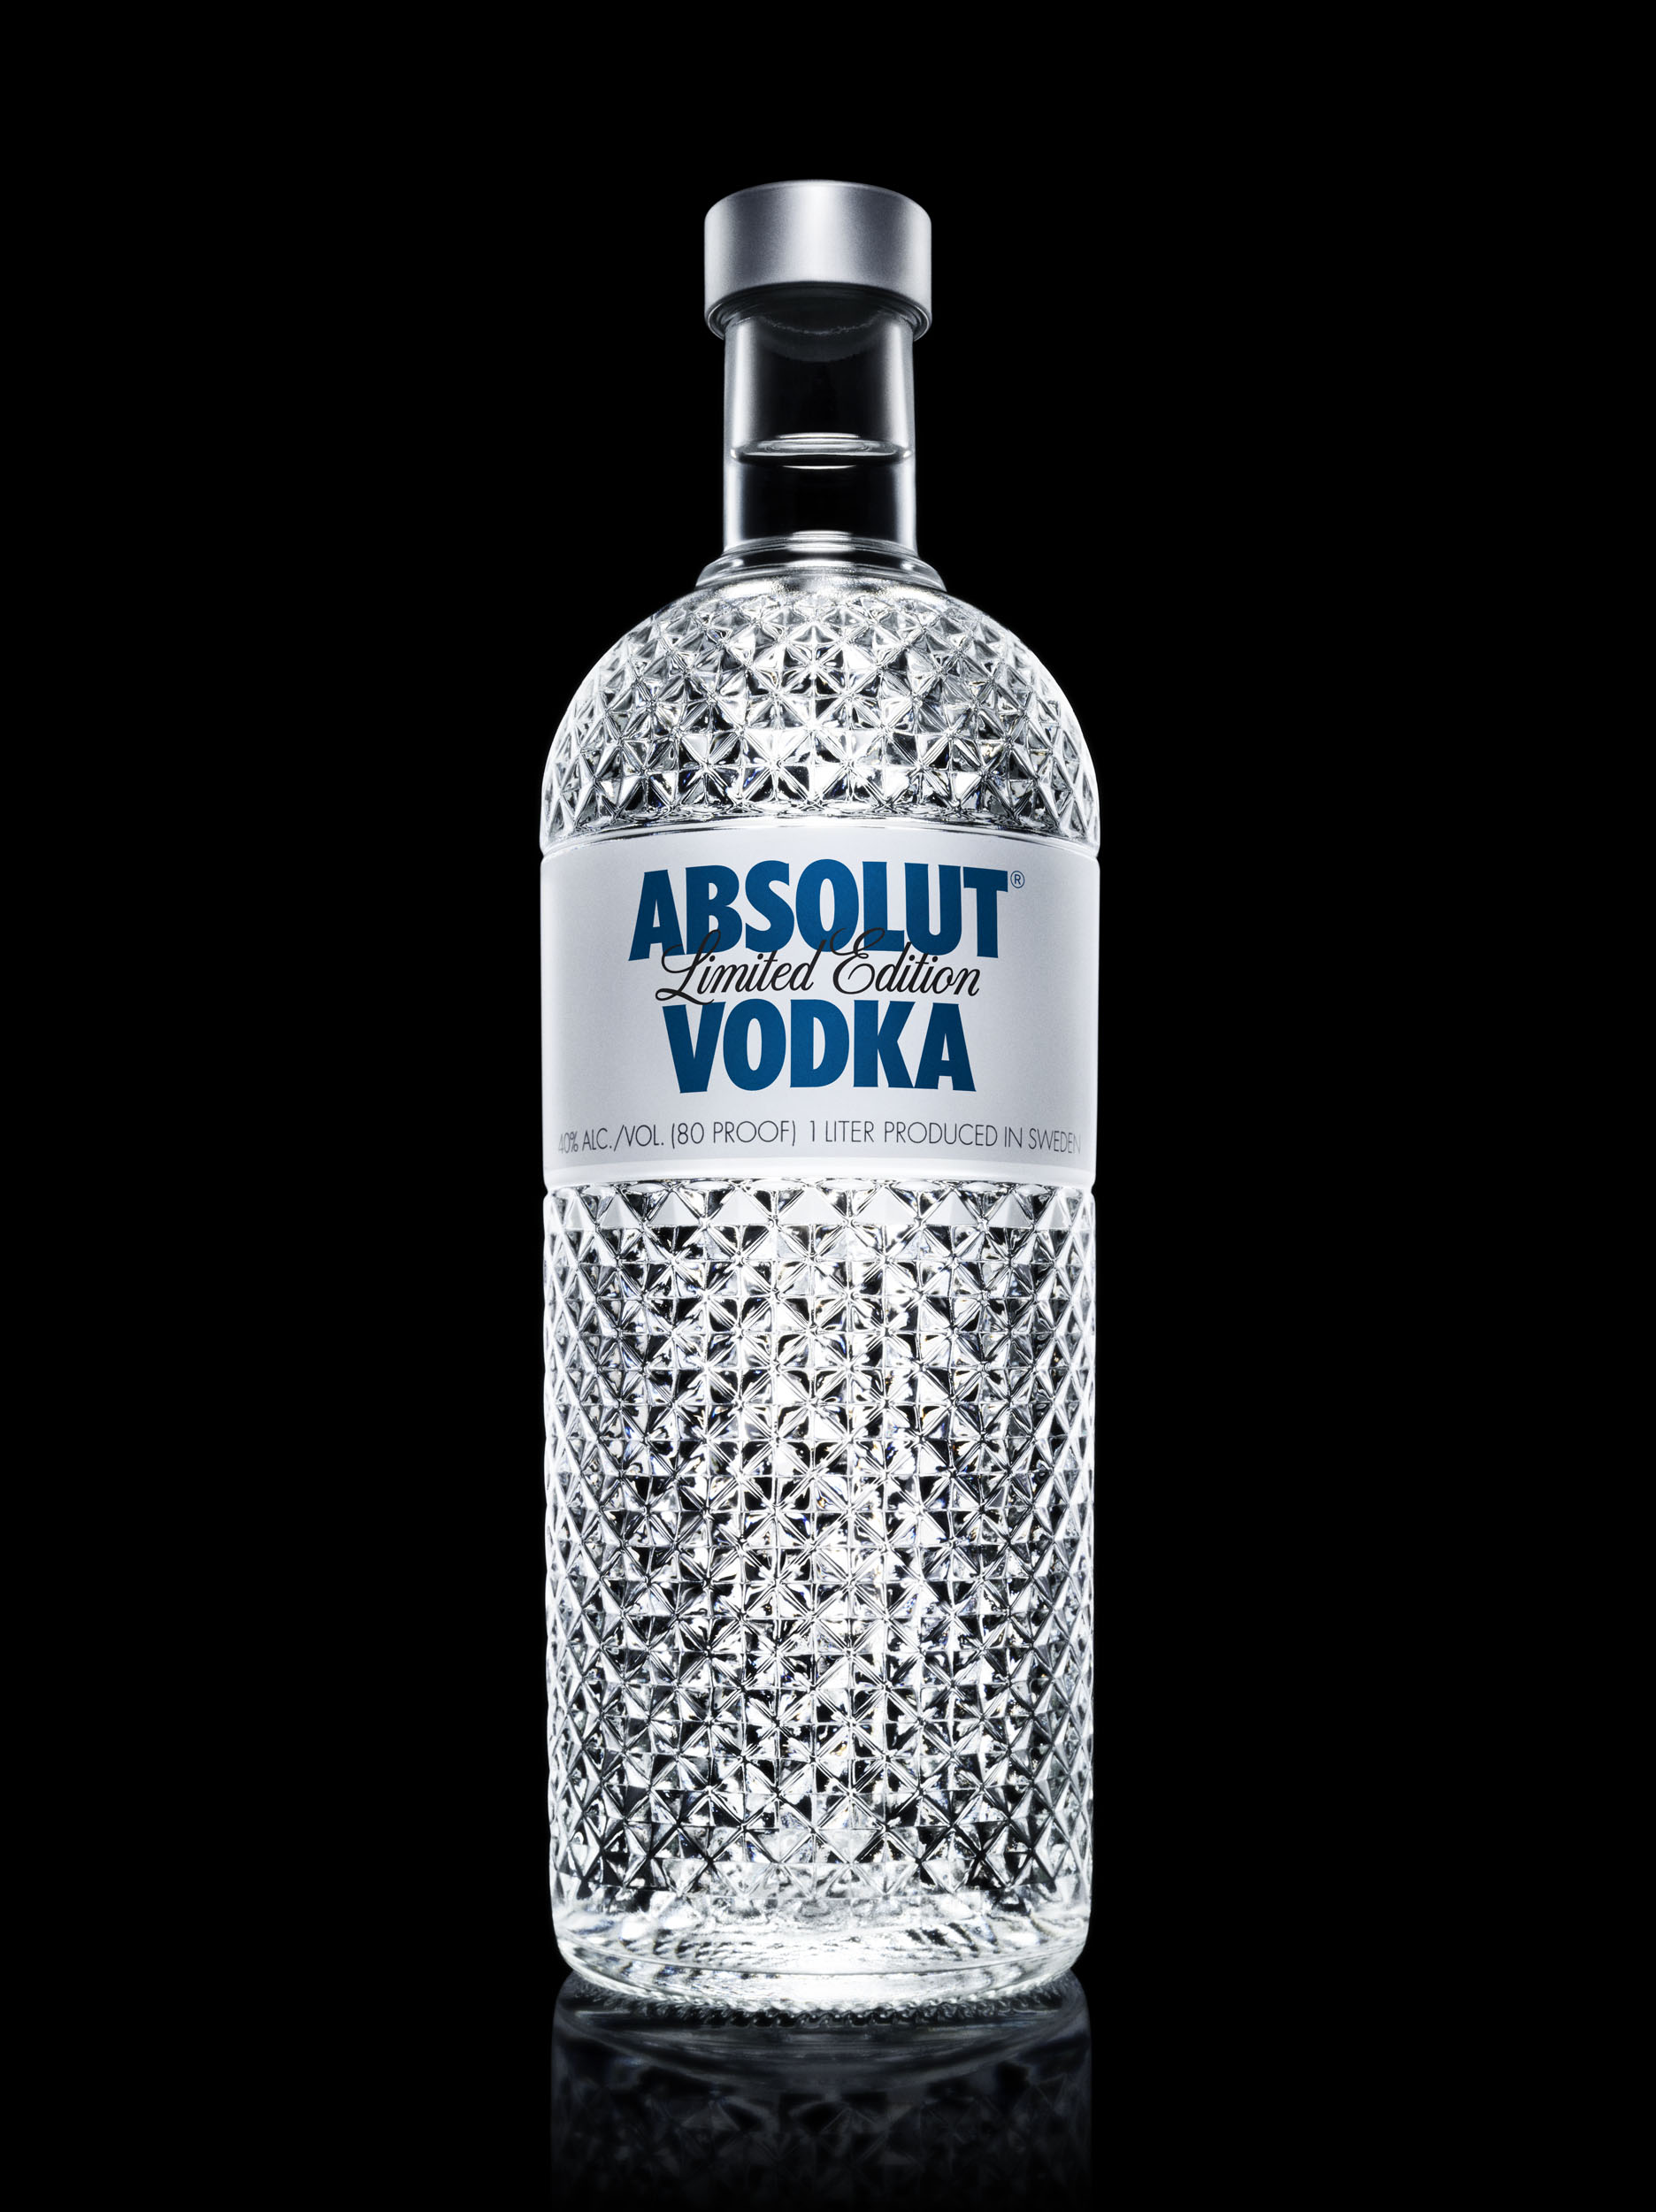 jensmortensen-absolut-vodka-cef9597a